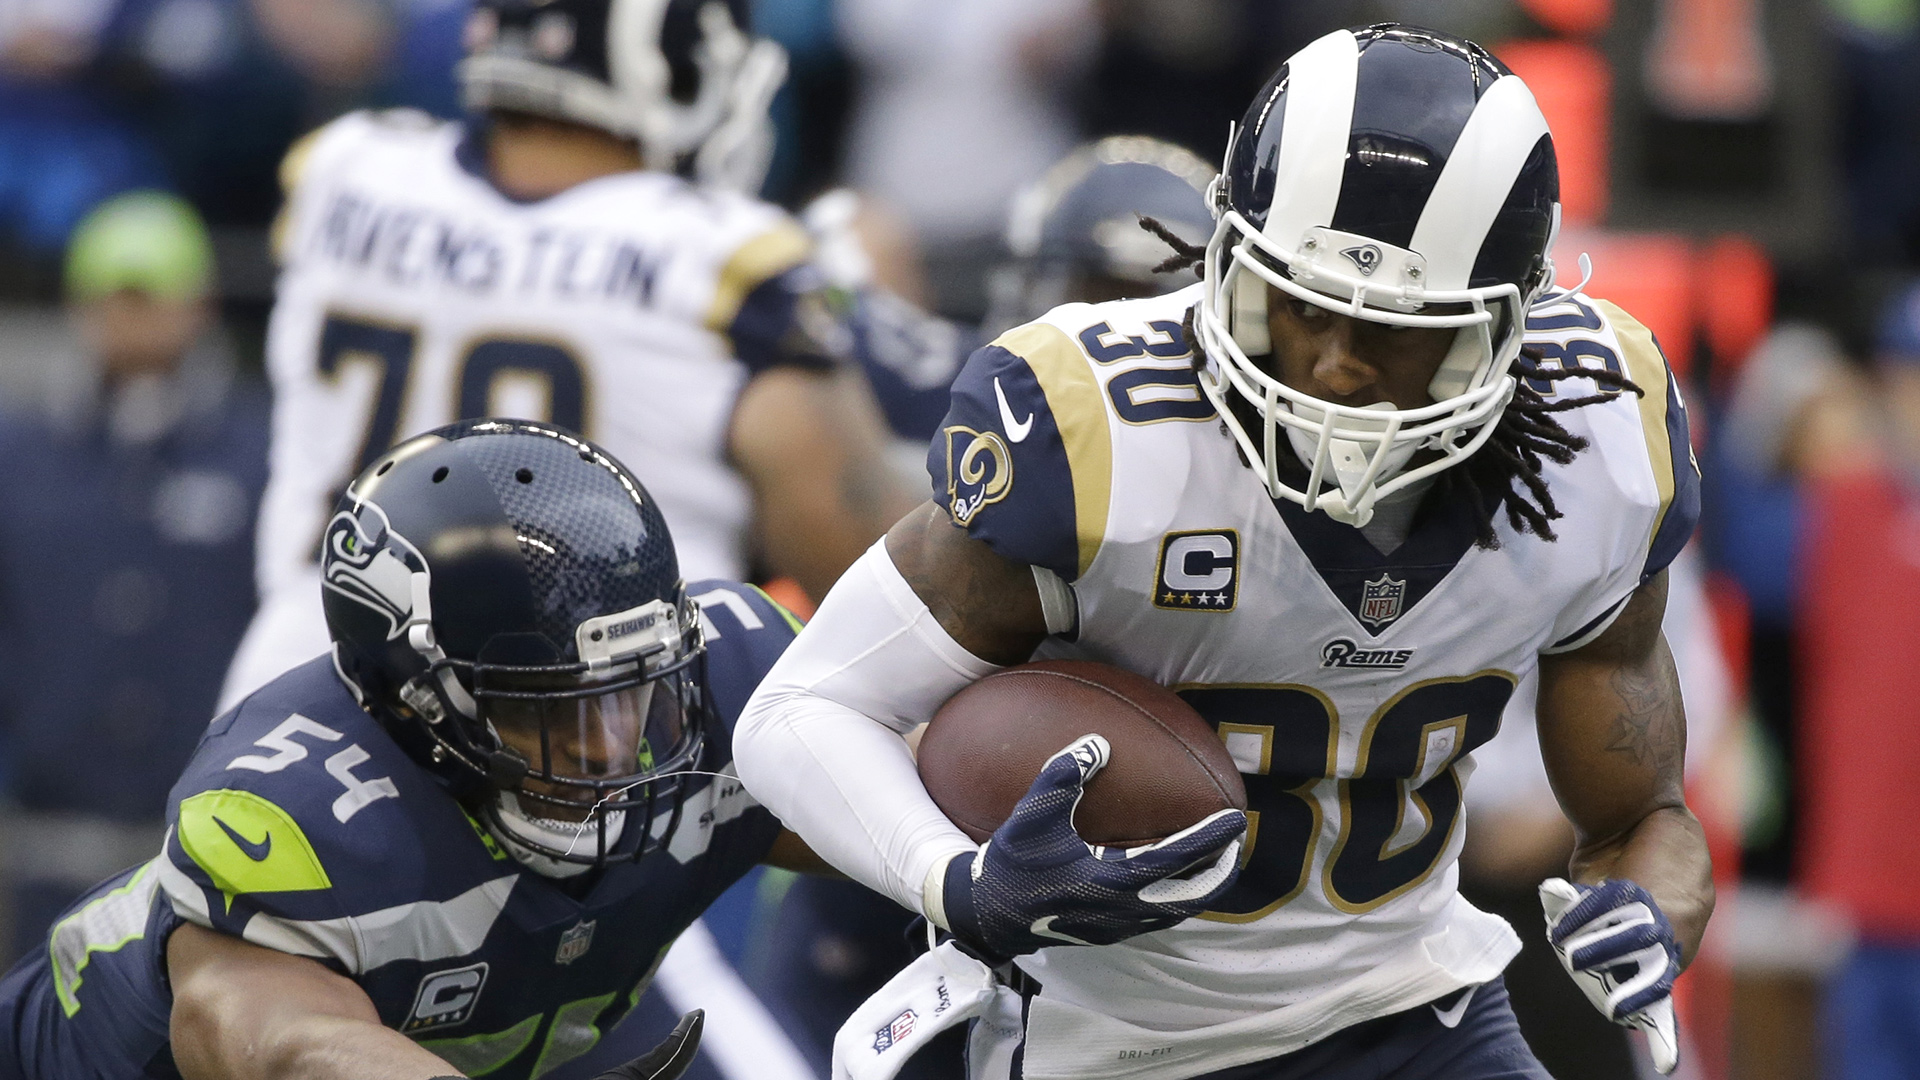 Los Angeles Rams running back Todd Gurley carries the ball as he gets ahead of Seattle Seahawks middle linebacker Bobby Wagner, left, in the first half of an NFL football game, Sunday, Dec. 17, 2017, in Seattle. (AP Photo/Elaine Thompson)